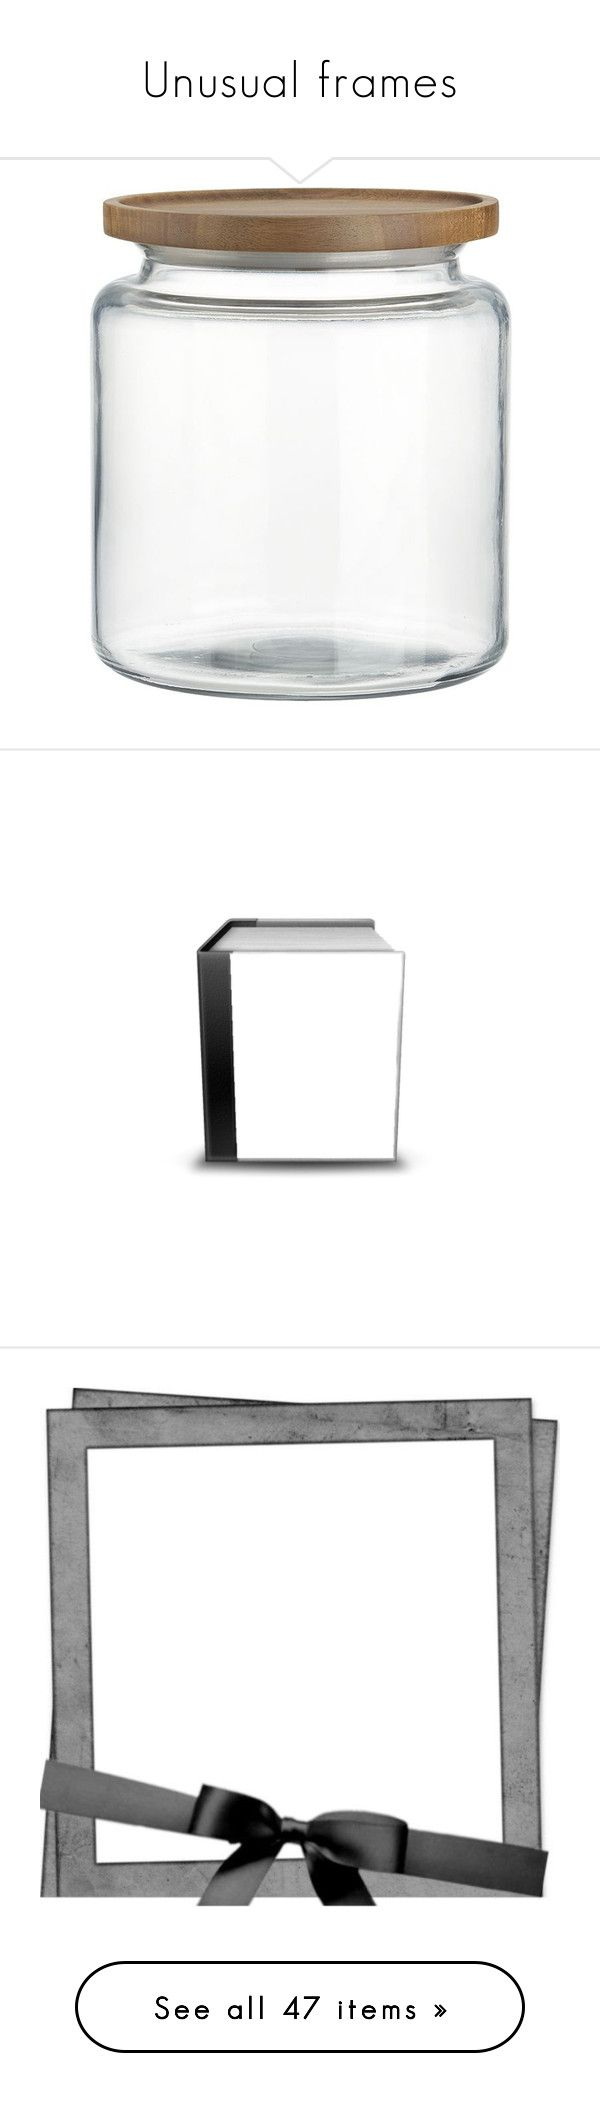 """""""Unusual frames"""" by jdee77 ❤ liked on Polyvore featuring home, kitchen & dining, food storage containers, fillers, items, jars, accessories, glass storage canisters, lidded glass jars and storage jars"""